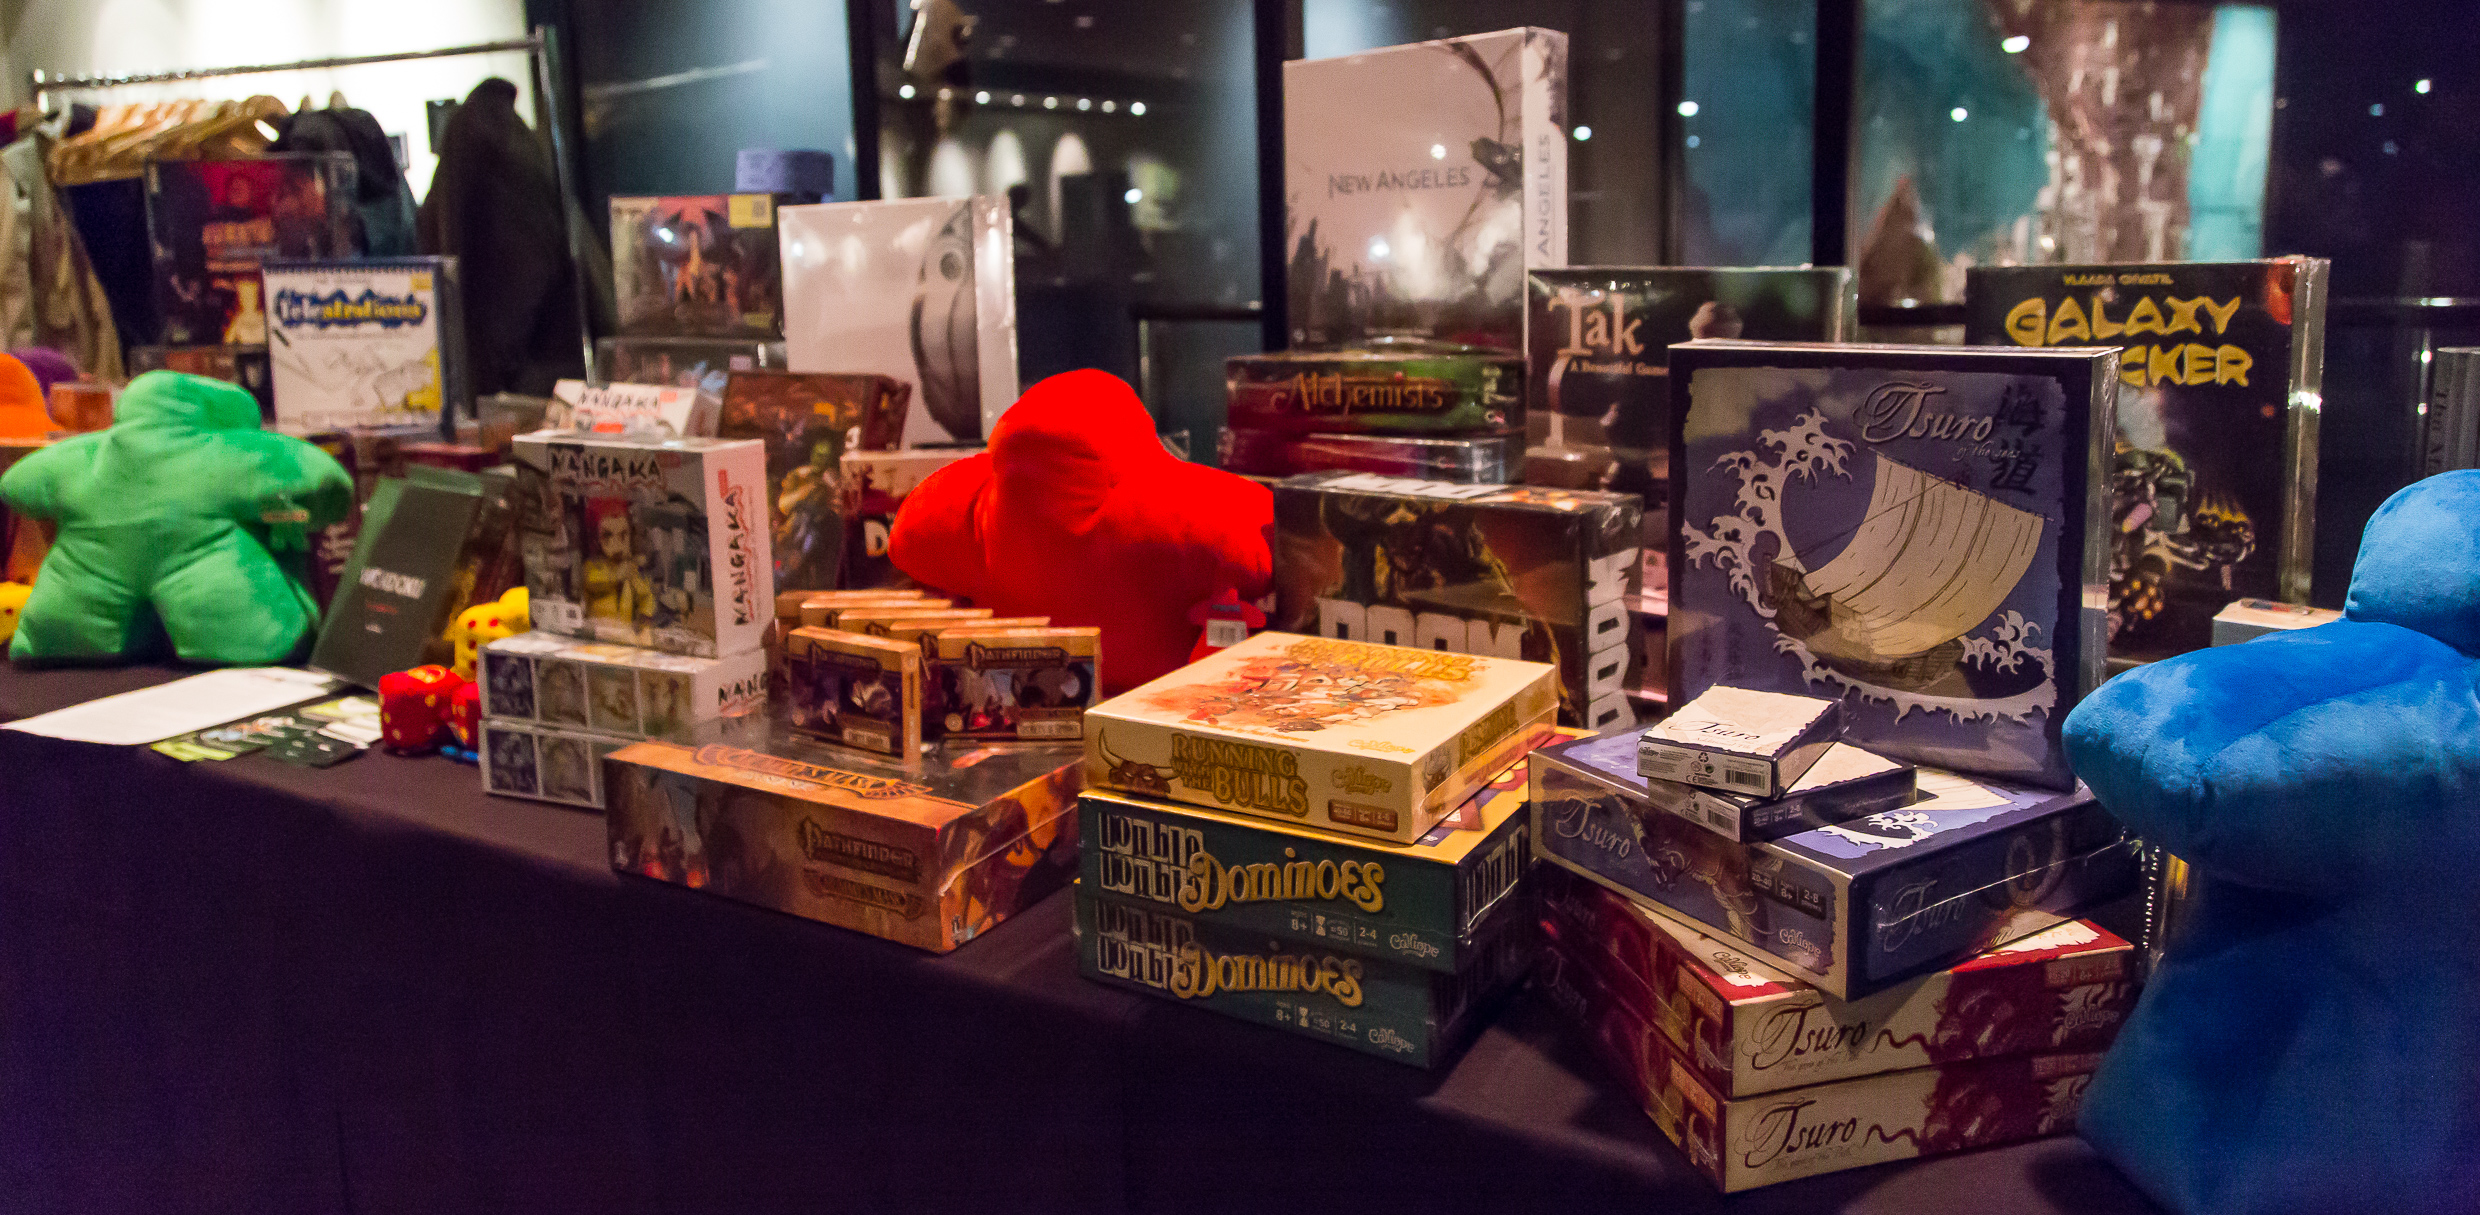 These were just SOME of the prizes from our last event! And we've got even more this time around!